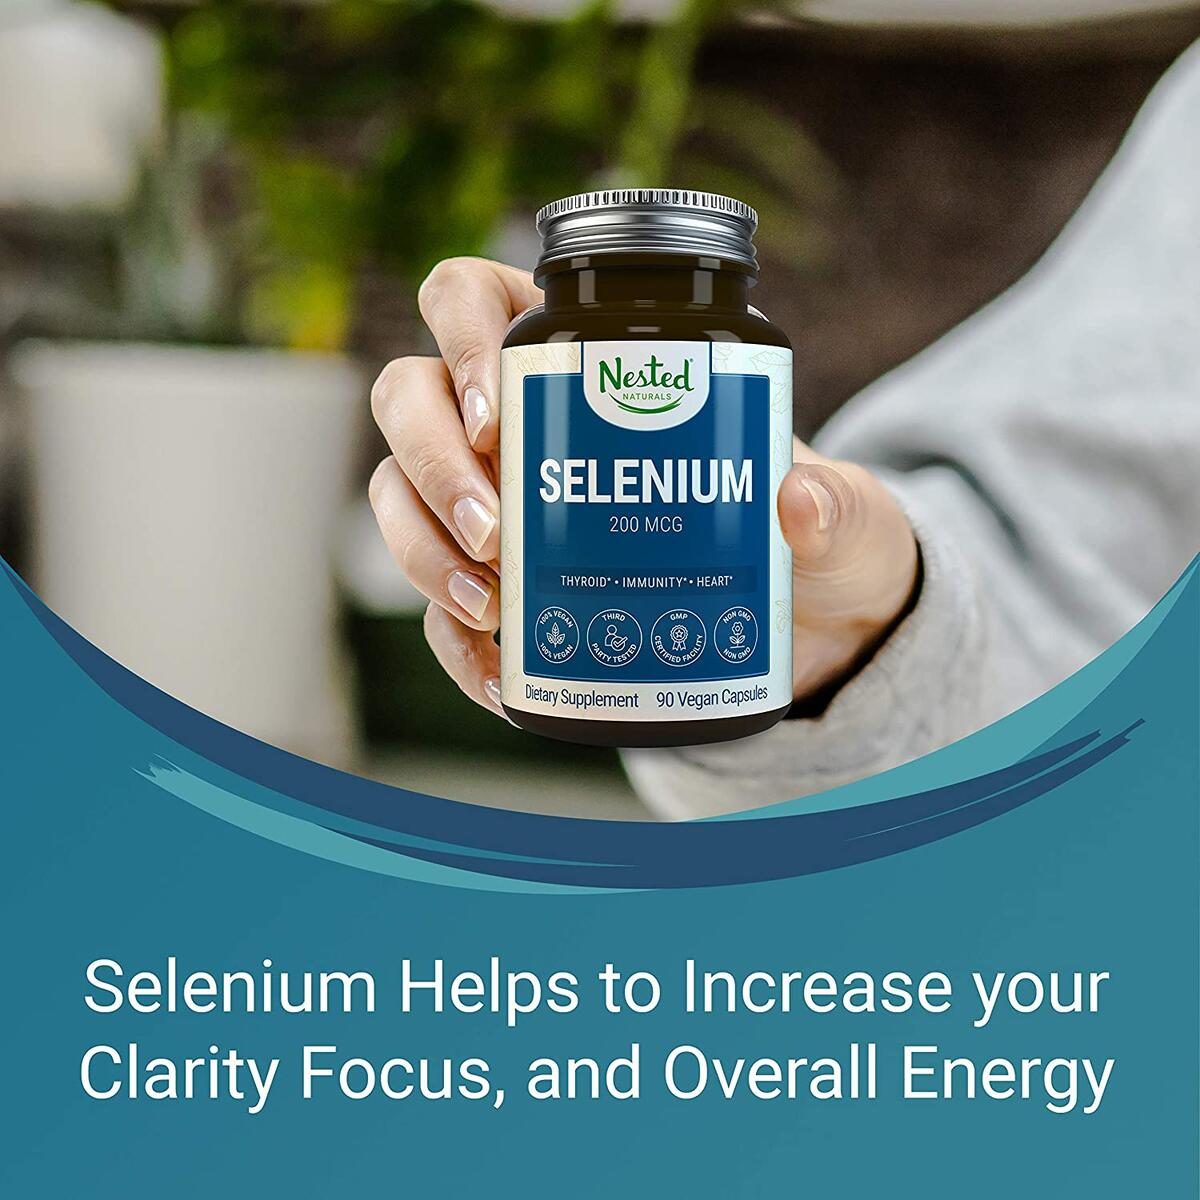 Nested Naturals Selenium 200mcg for Thyroid, Prostate and Heart Health | Immune System Function Supplement